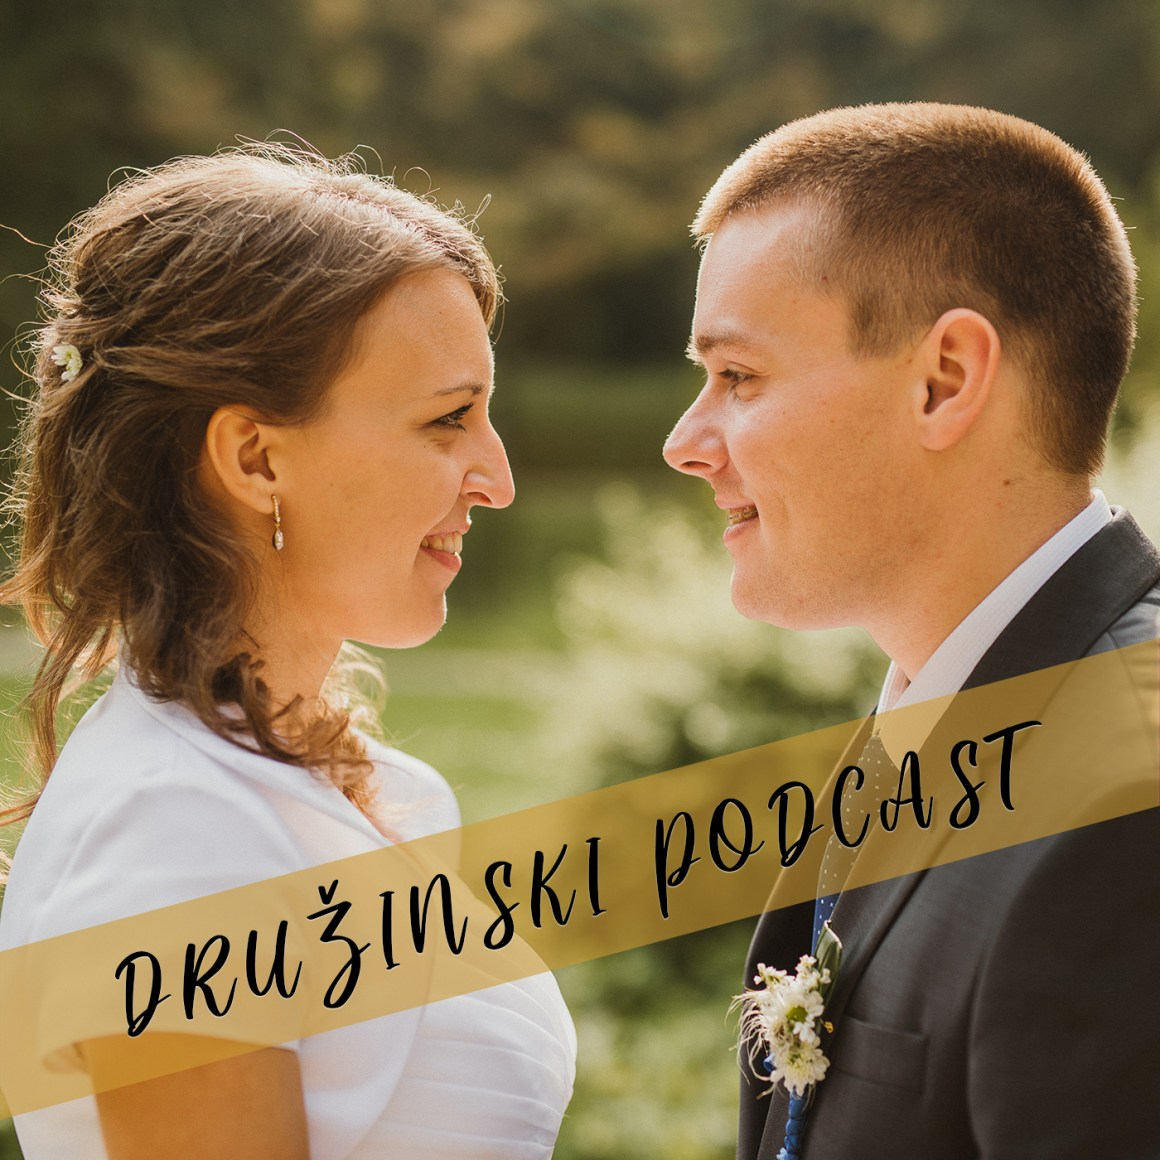 DRUZINSKI PODCAST